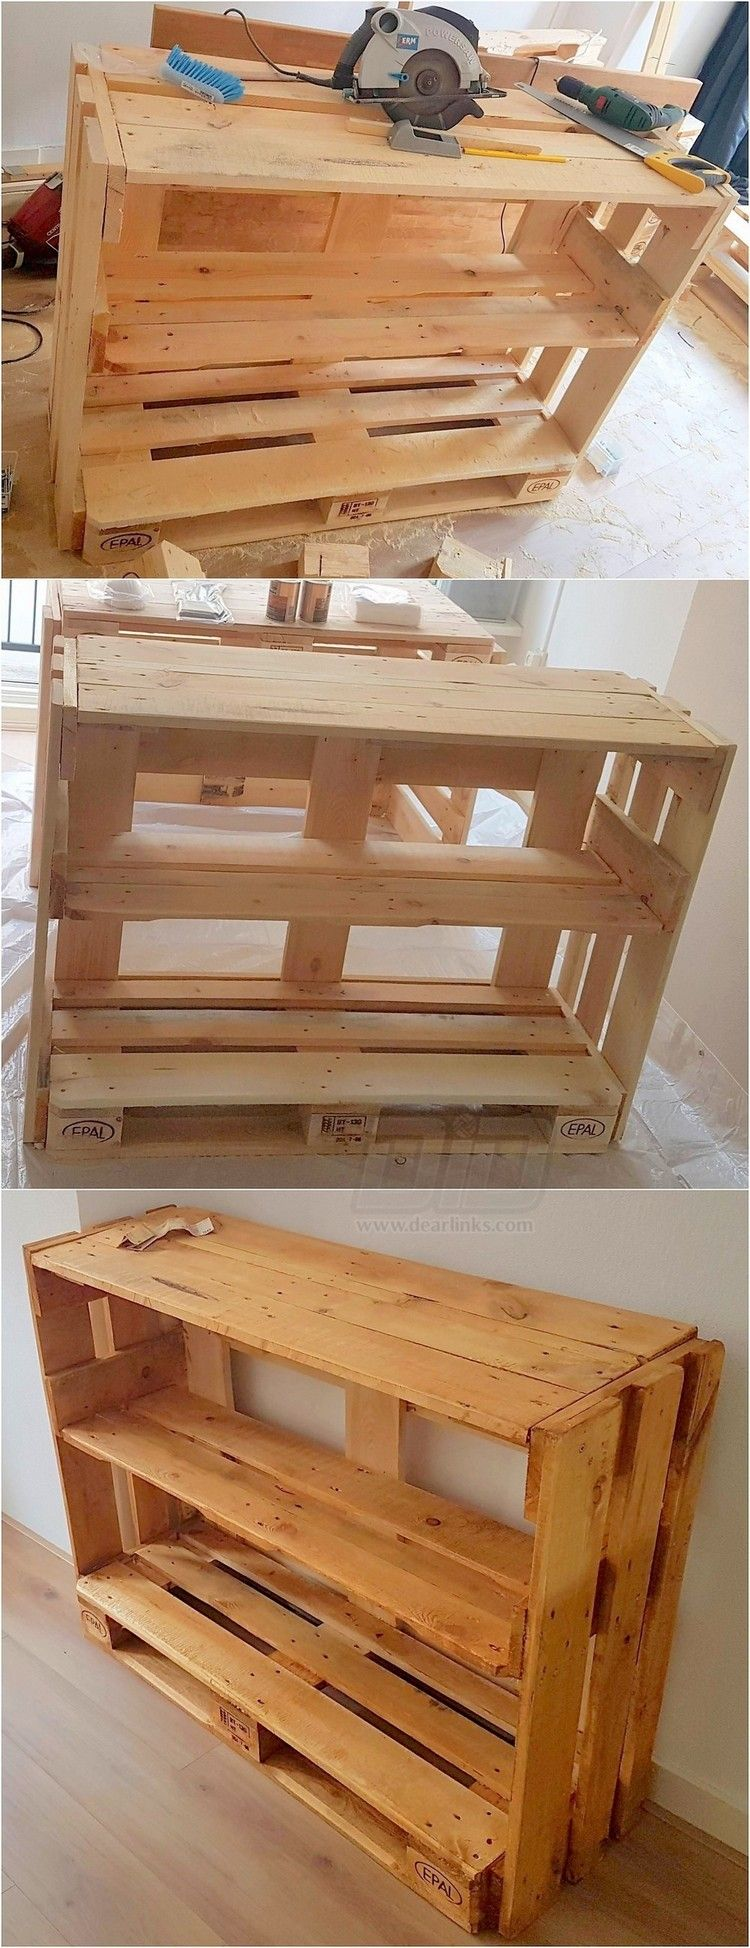 Supreme Allure Pallet Wood Repurpose Ideas #oldpalletsforcrafting